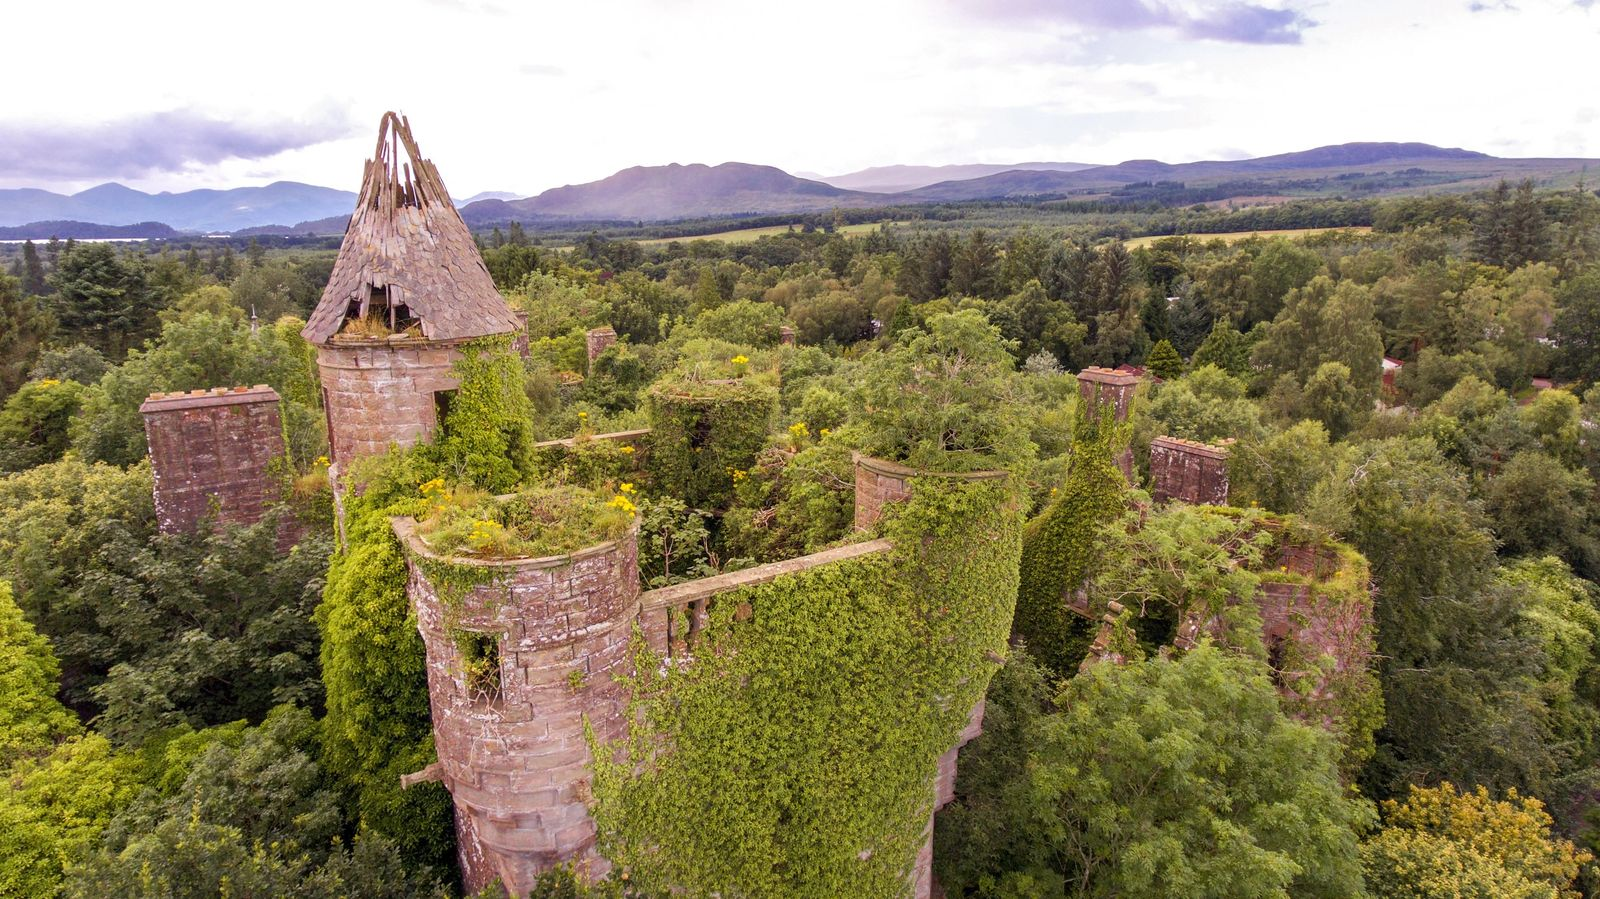 Loch Lomond and Trossachs National Park Castles